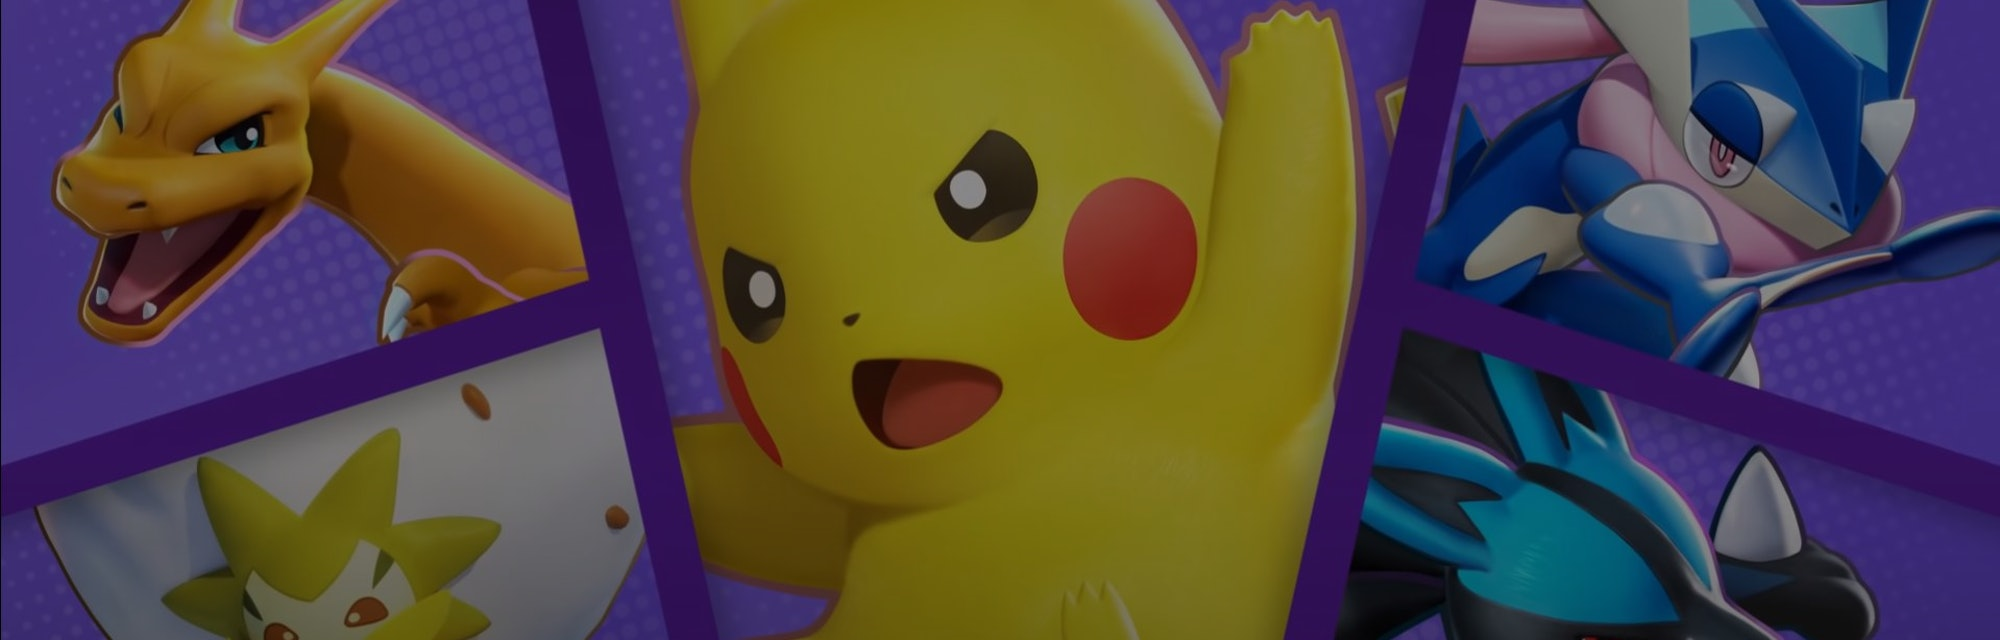 Pokémon Unite' Switch release time, file size, and pre load for ...